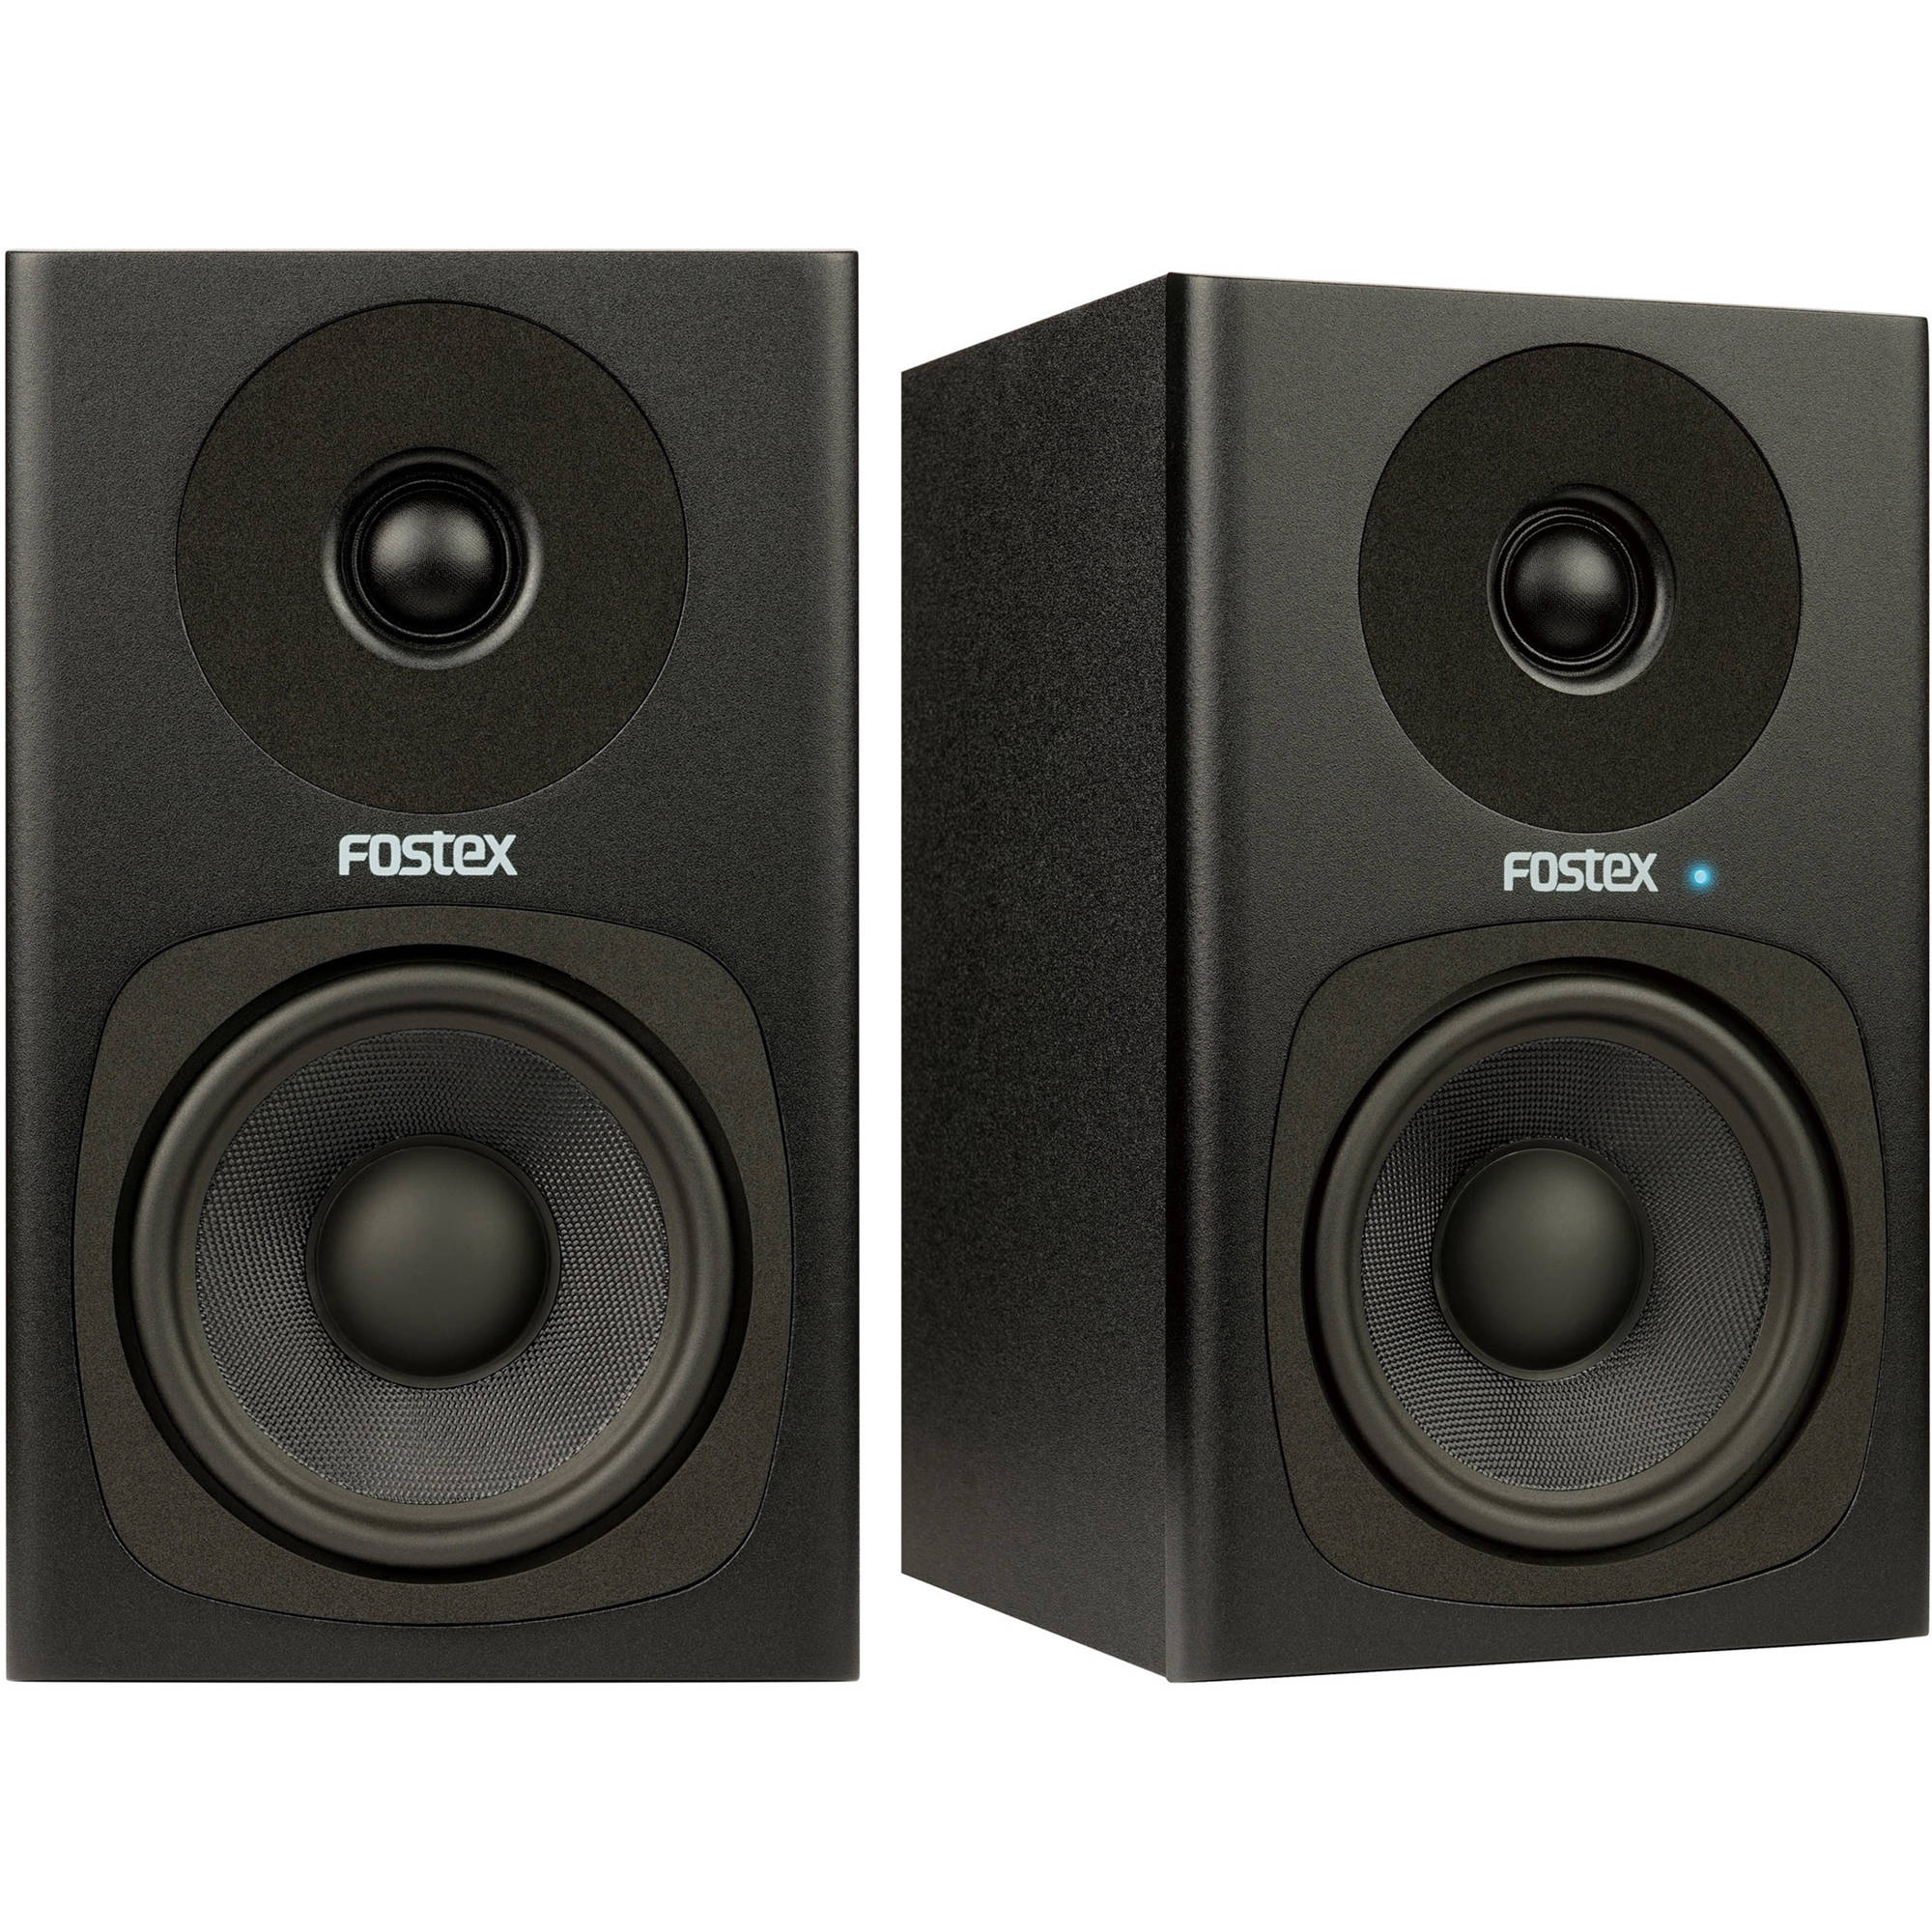 Fostex PM0.4c Personal Active Speaker System (Black)